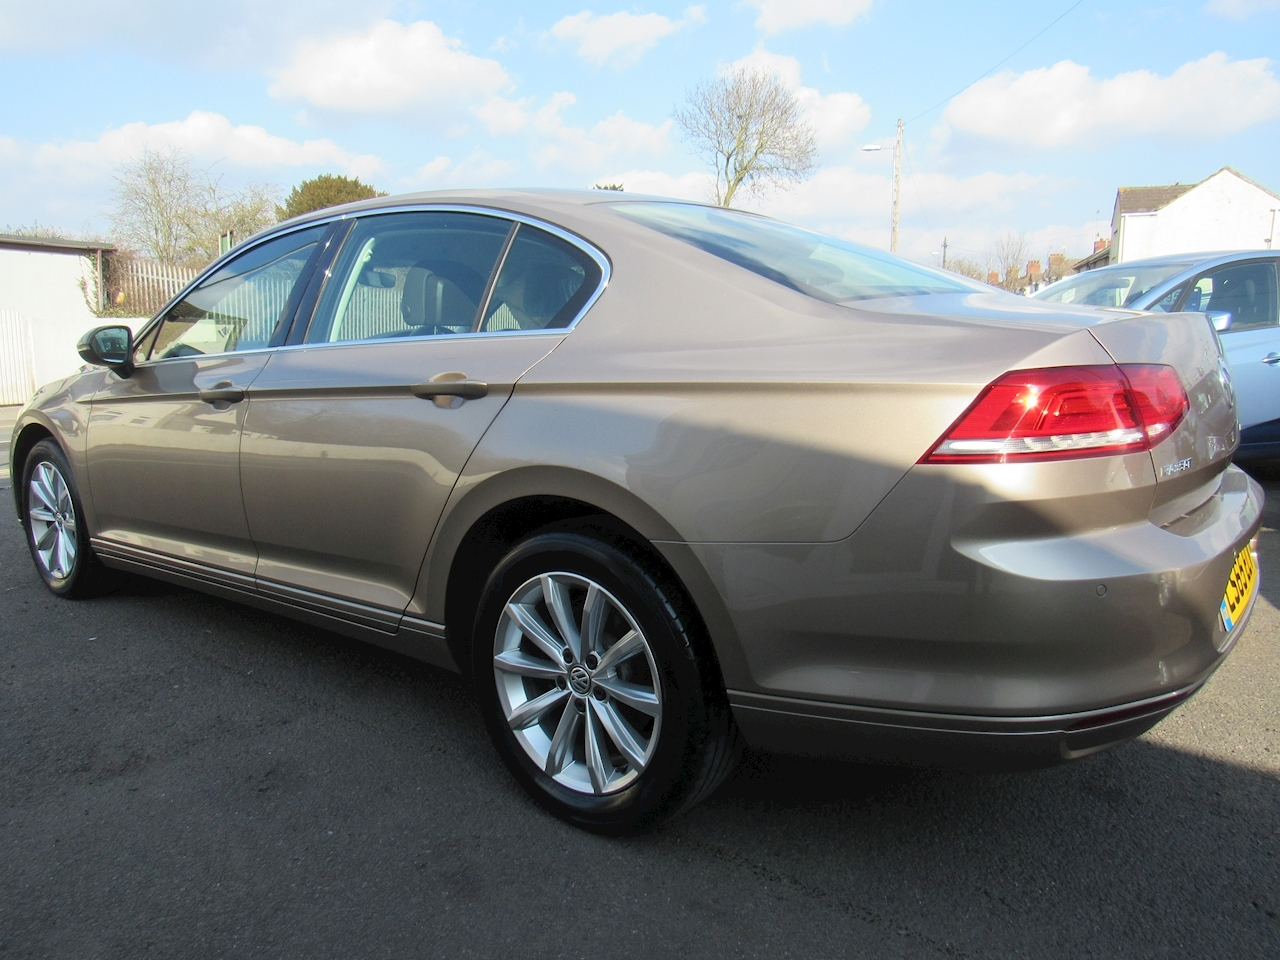 Volkswagen Passat Se Tdi Bluemotion Technology Saloon 1.6 Manual Diesel